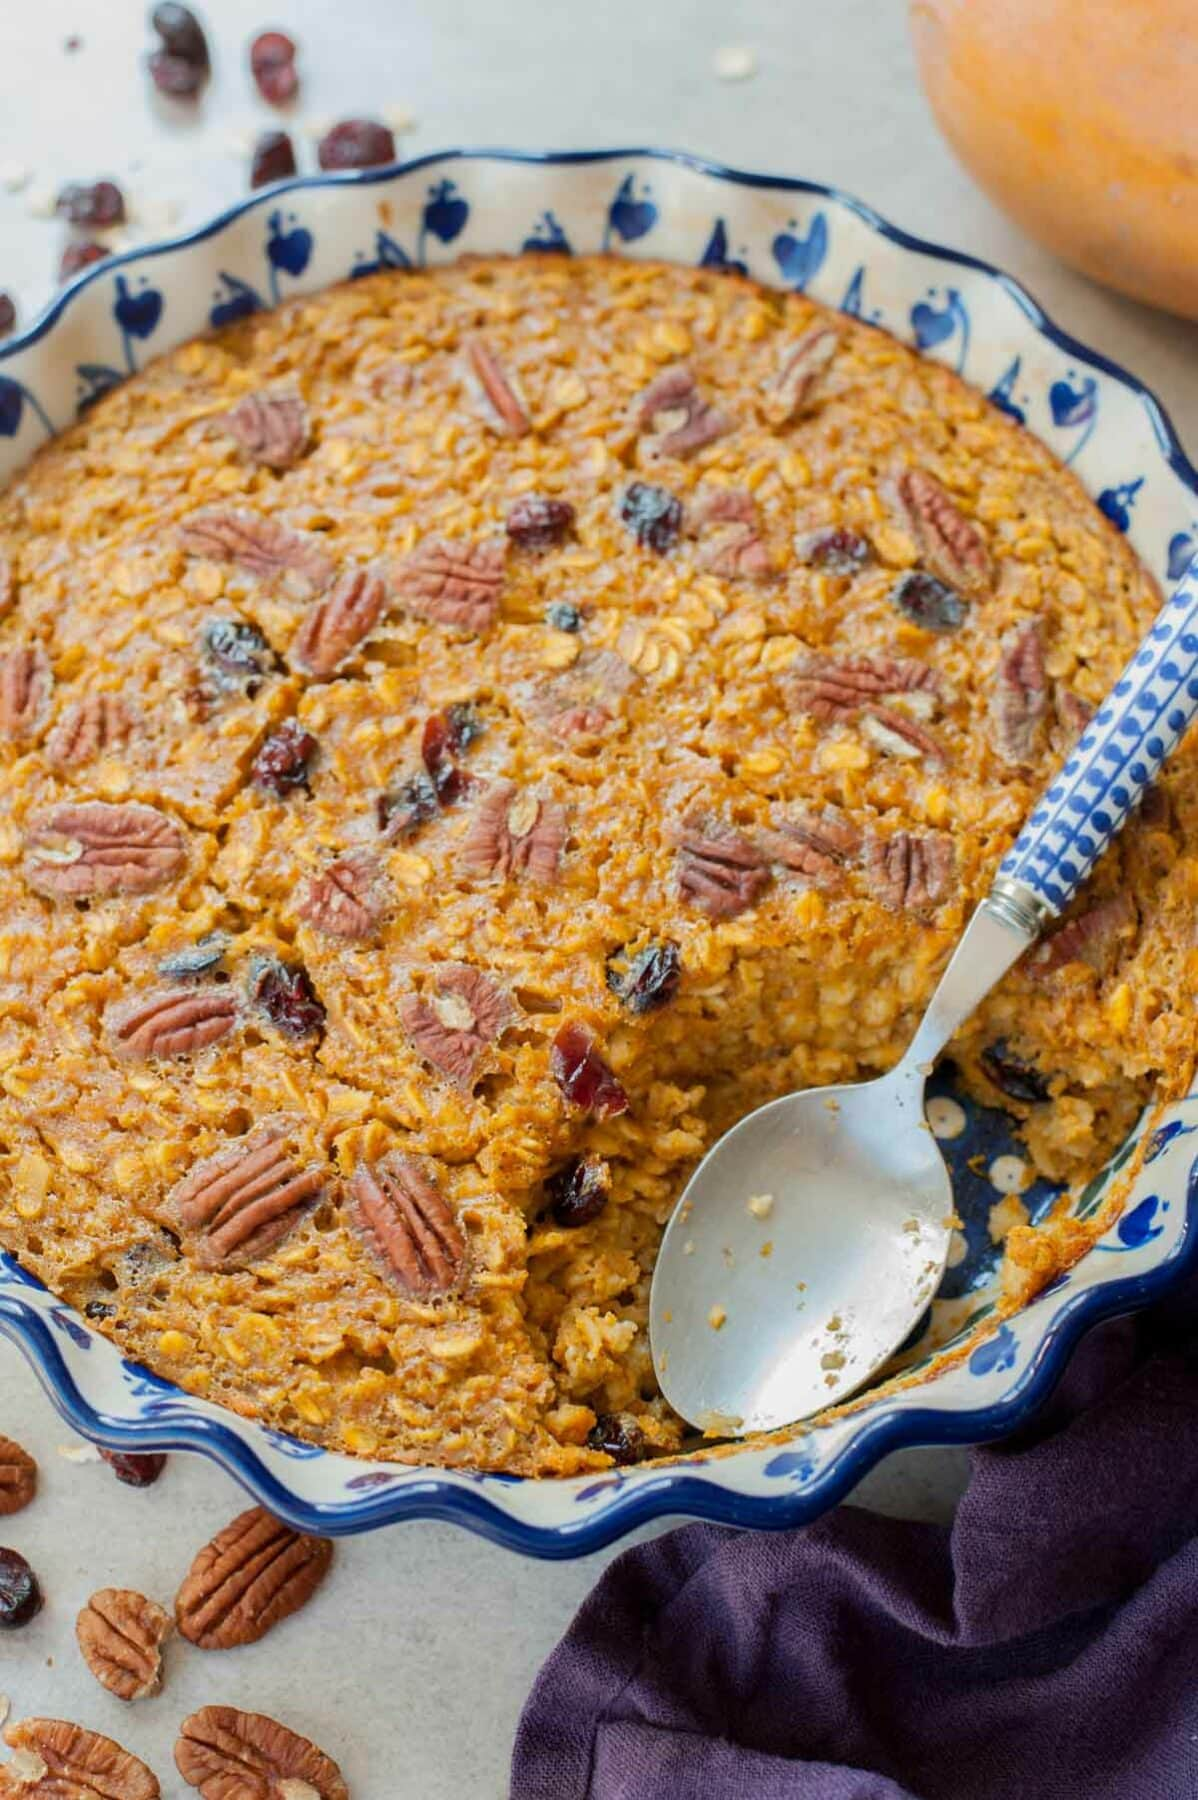 Close up picture of baked pumpkin oatmeal in a blue-white baking dish with a serving missing.